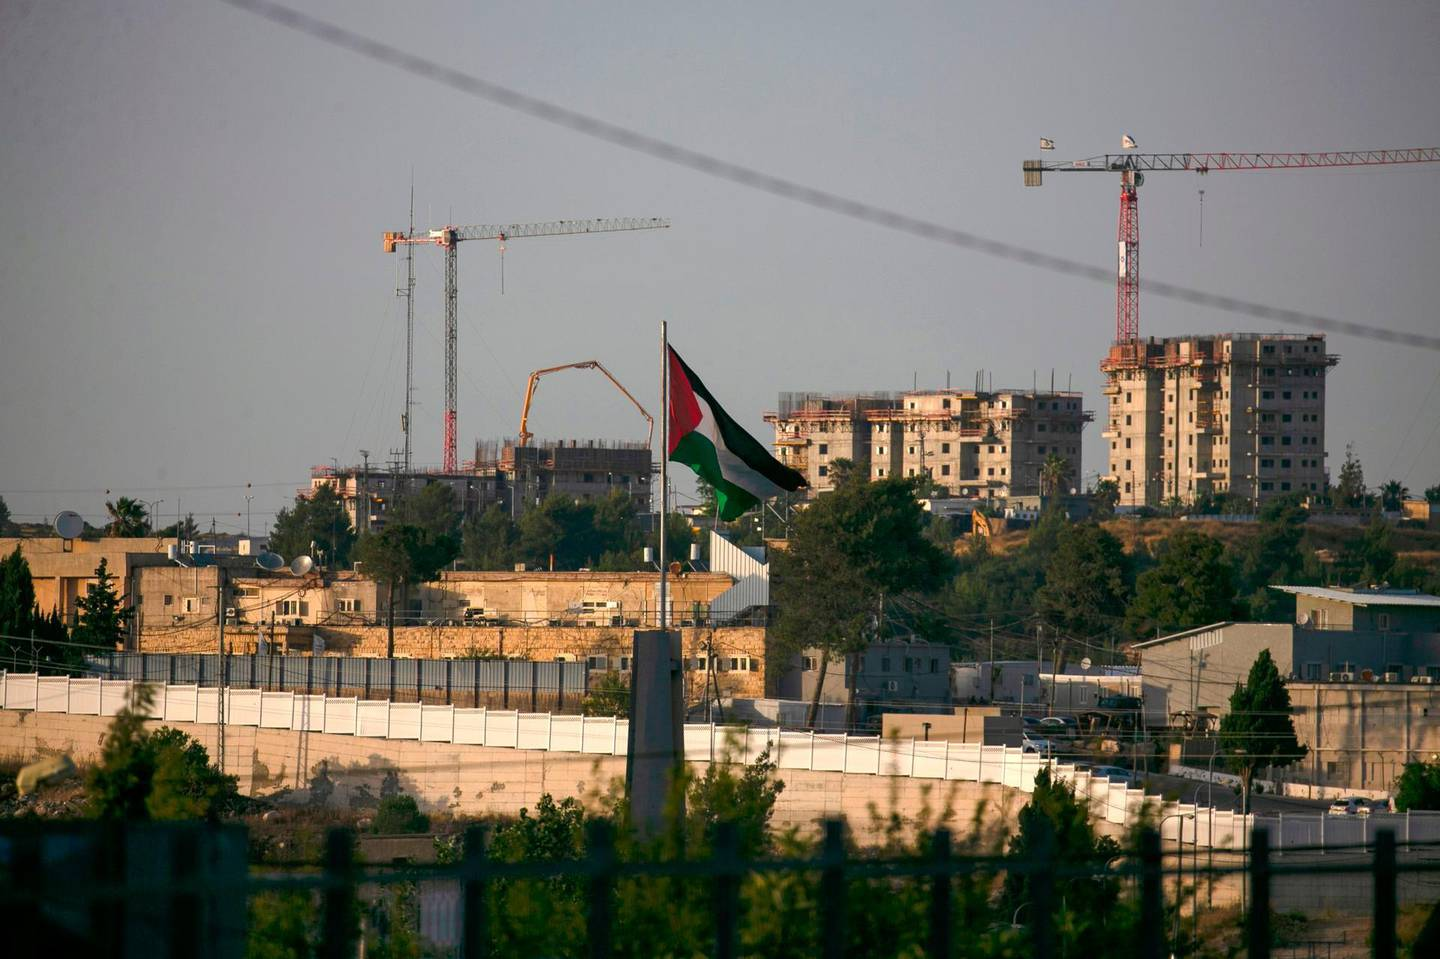 A Palestinian flag waves at the northern entrance to the city of Ramallah in the occupied West Bank as construction works take place in the Israeli settlement of Beit El in the background, on June 16, 2020. Israel intends to annex West Bank settlements and the Jordan Valley, as proposed by US President Donald Trump, with initial steps slated to begin from July 1. / AFP / ABBAS MOMANI